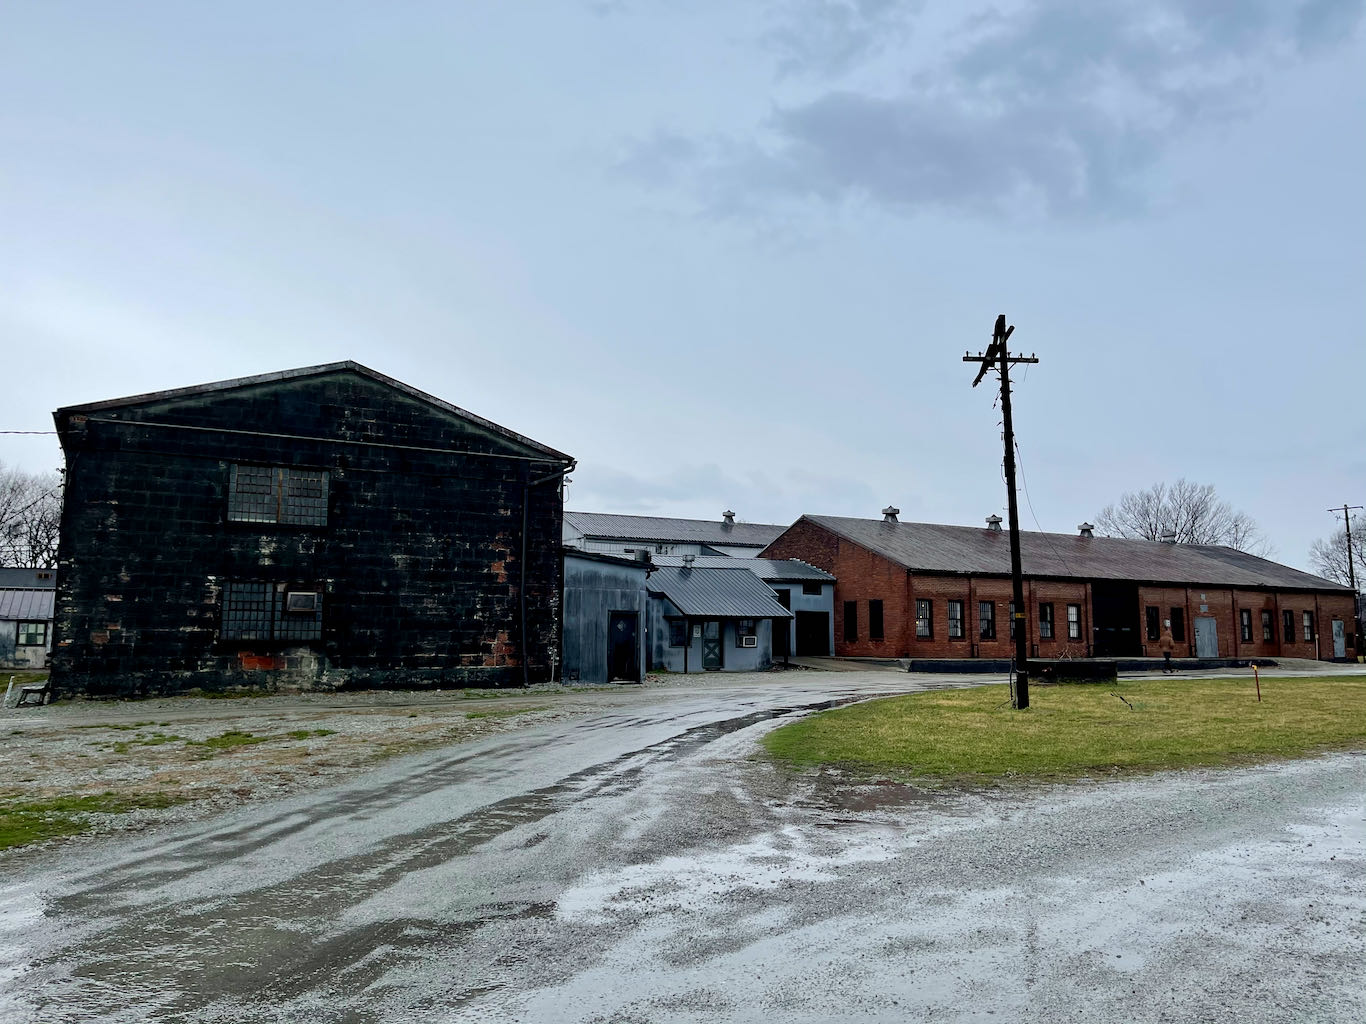 Tour check in, museum, future gift shop and restaurant - Old Samuels Distillery